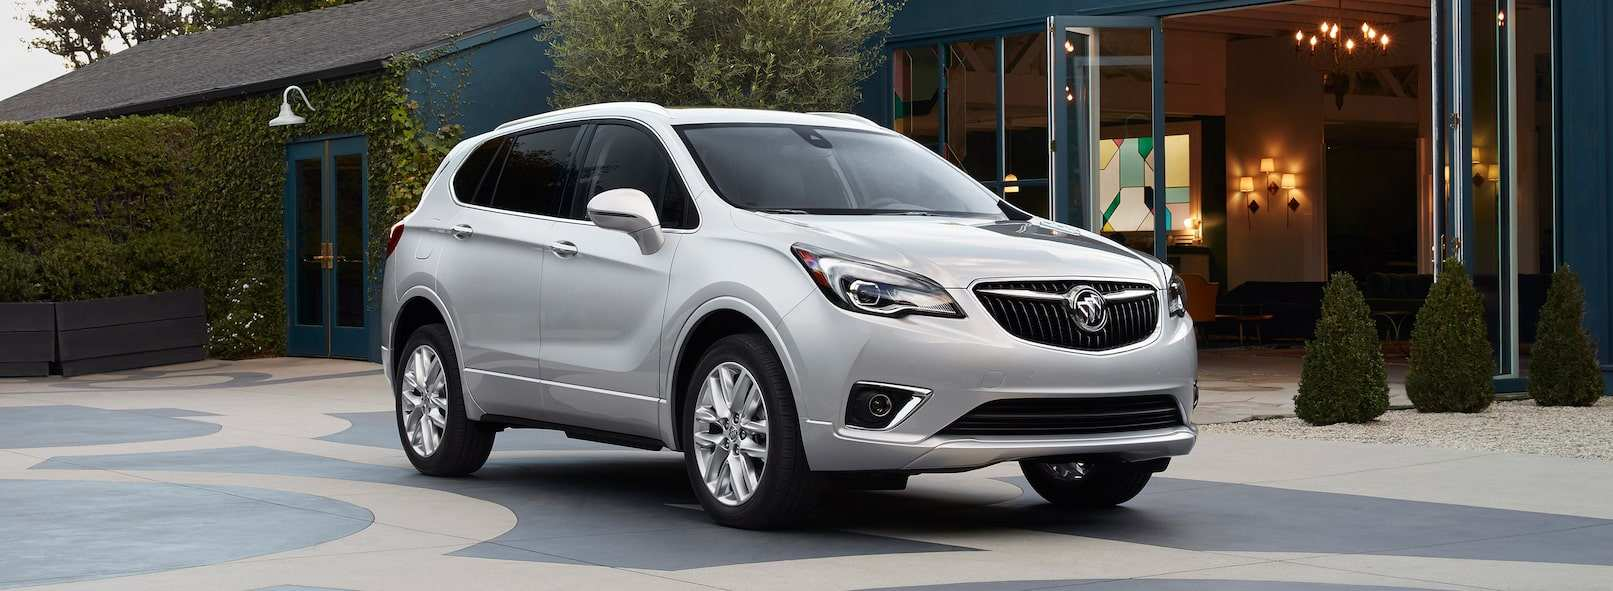 55 A 2019 Buick Envision Rumors